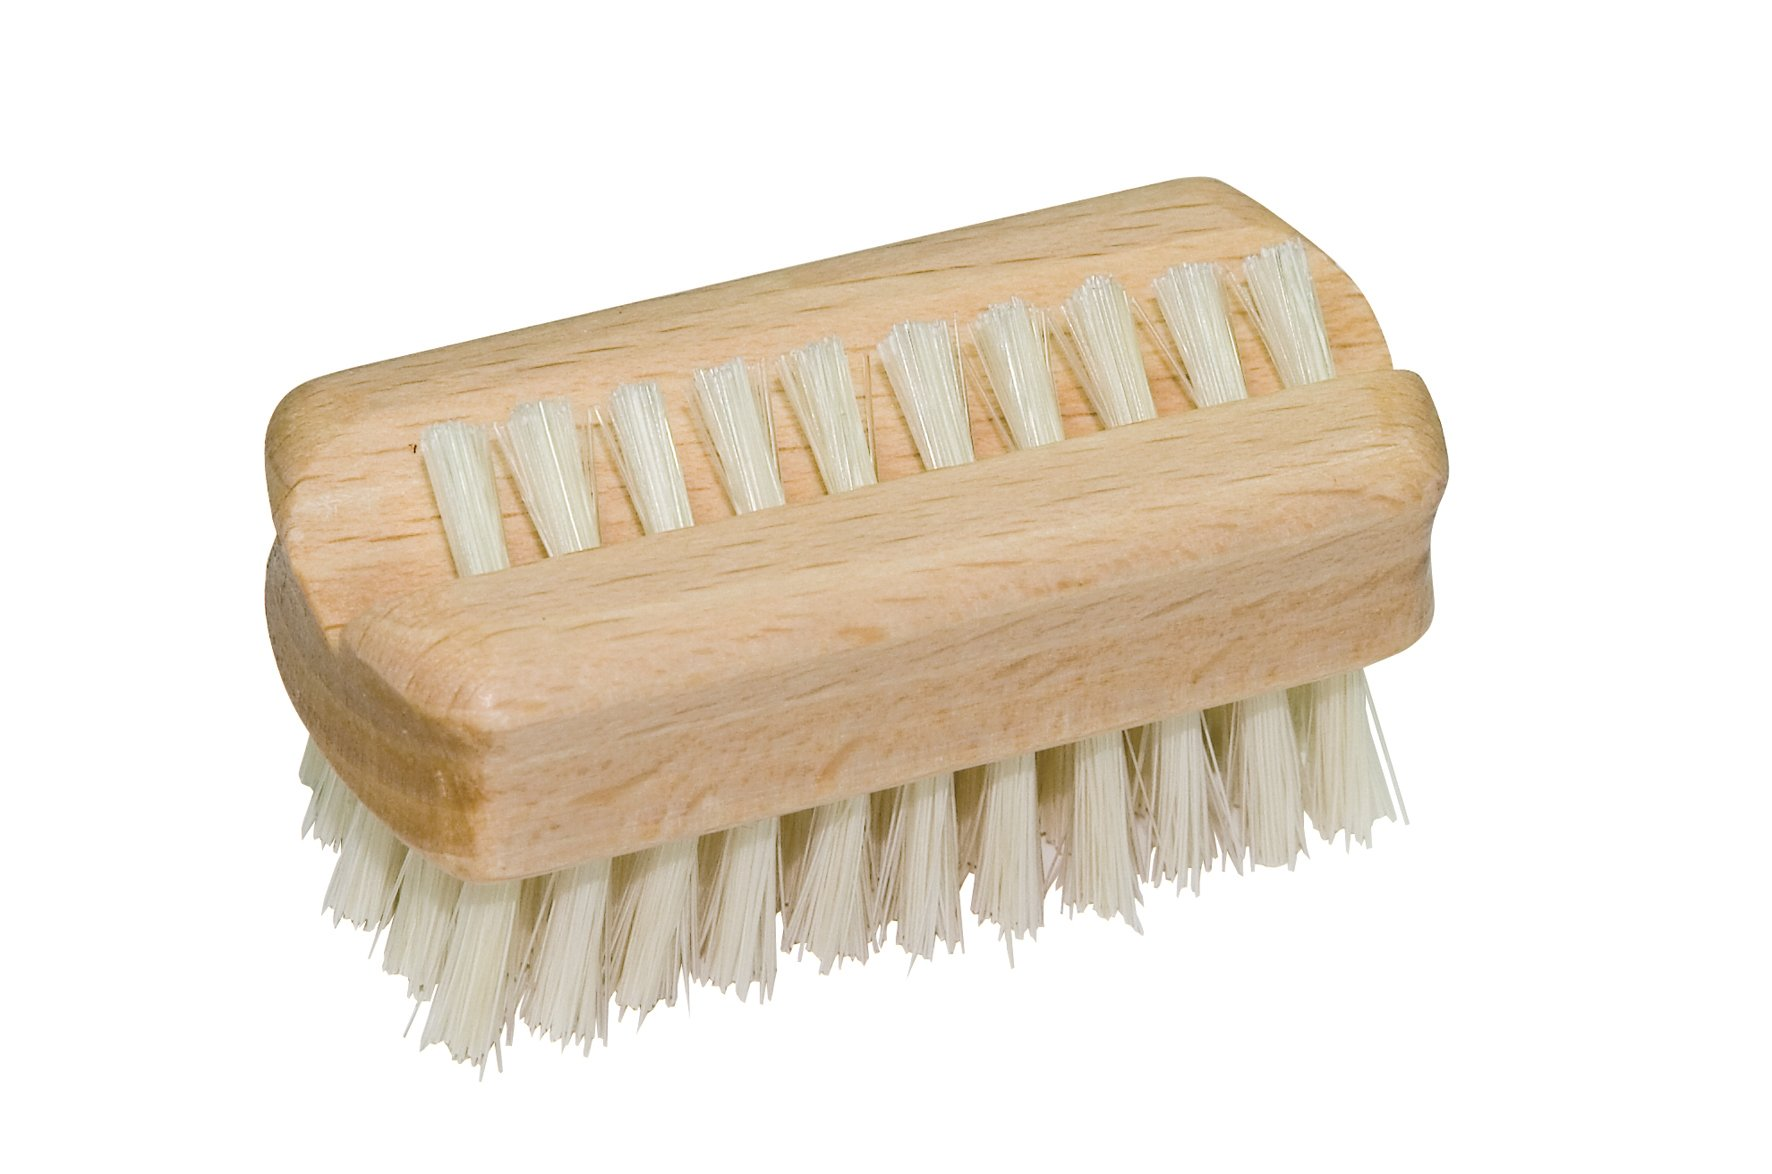 Redecker Natural Pig Bristle Travel Nail Brush with Oiled Beechwood Handle, 2-1/4-Inches